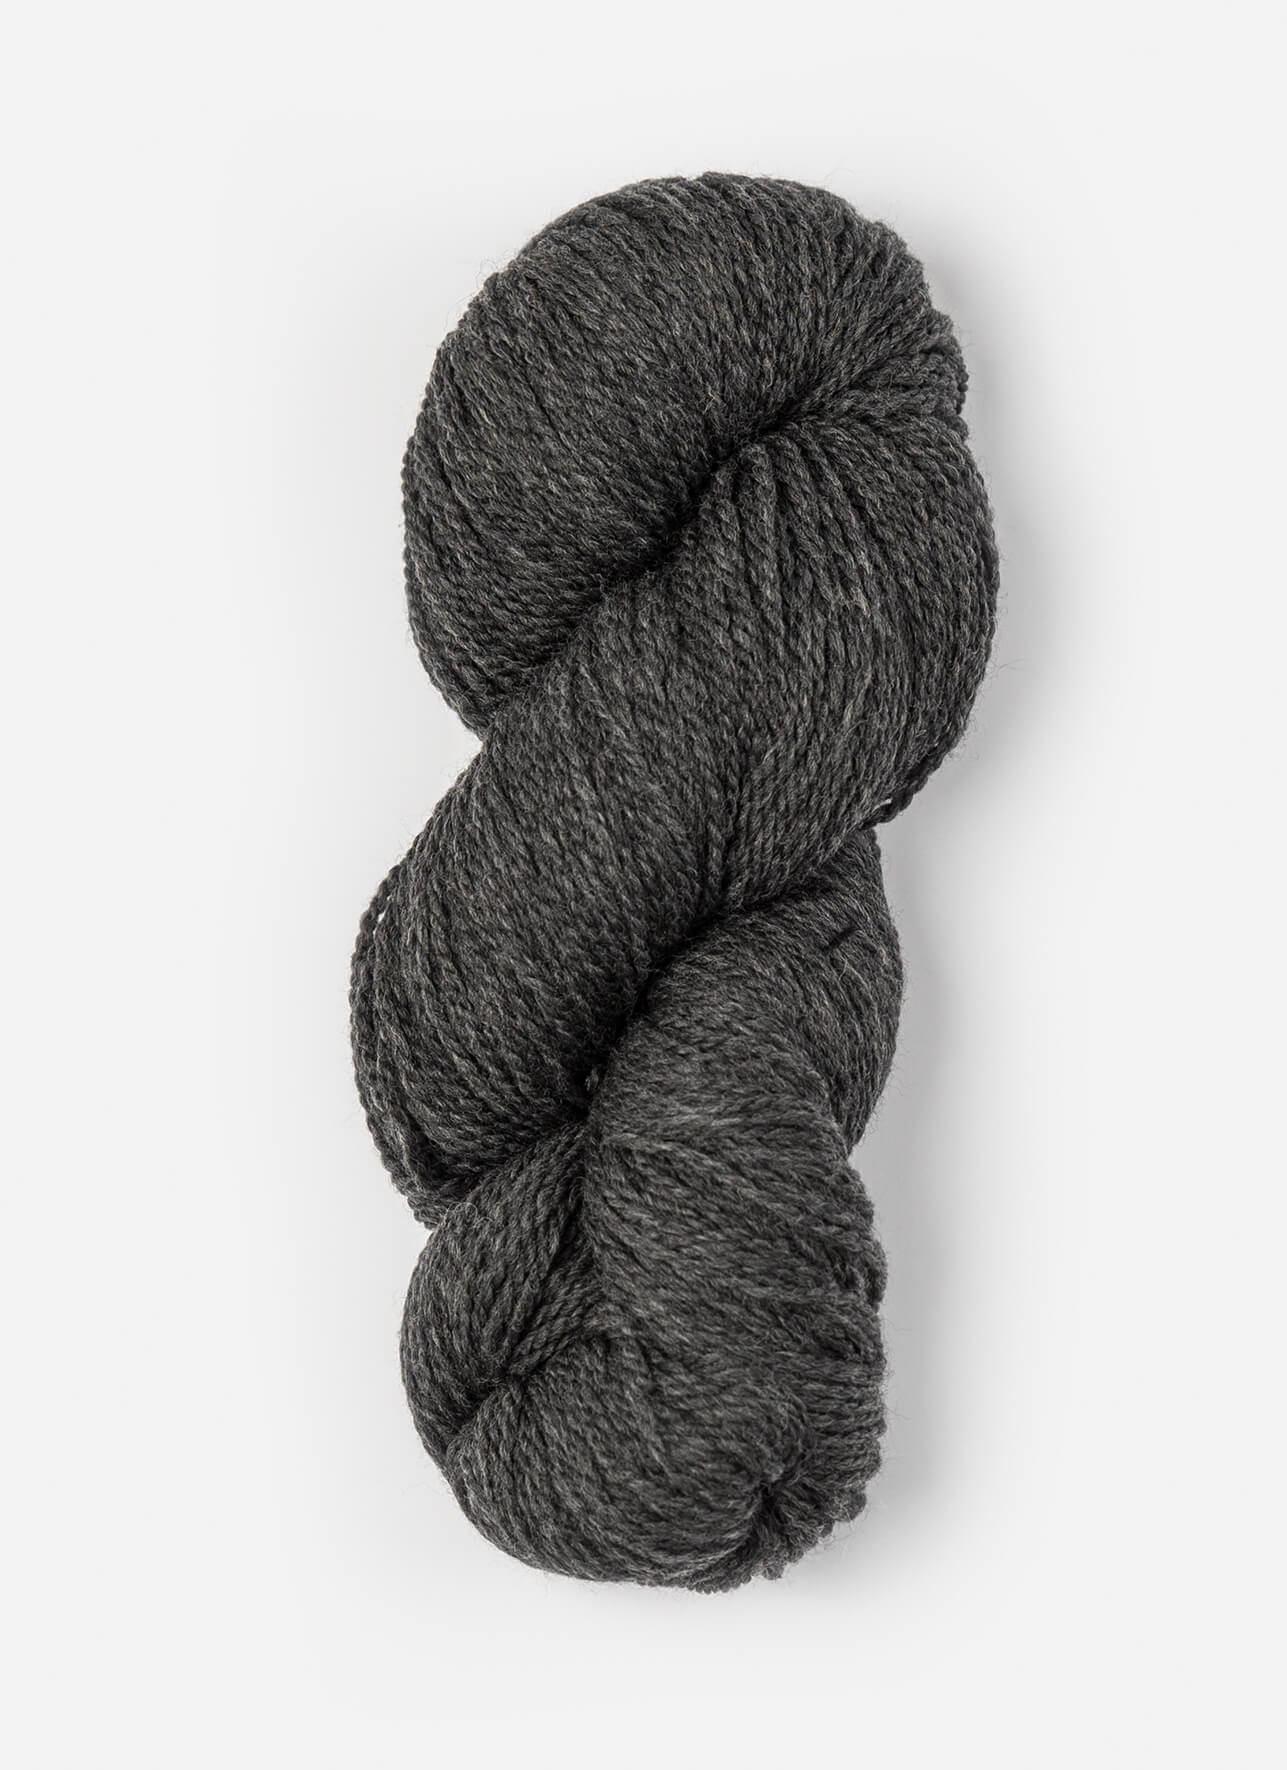 Blue Sky Fibers' Woolstok in 1300L - Cast Iron